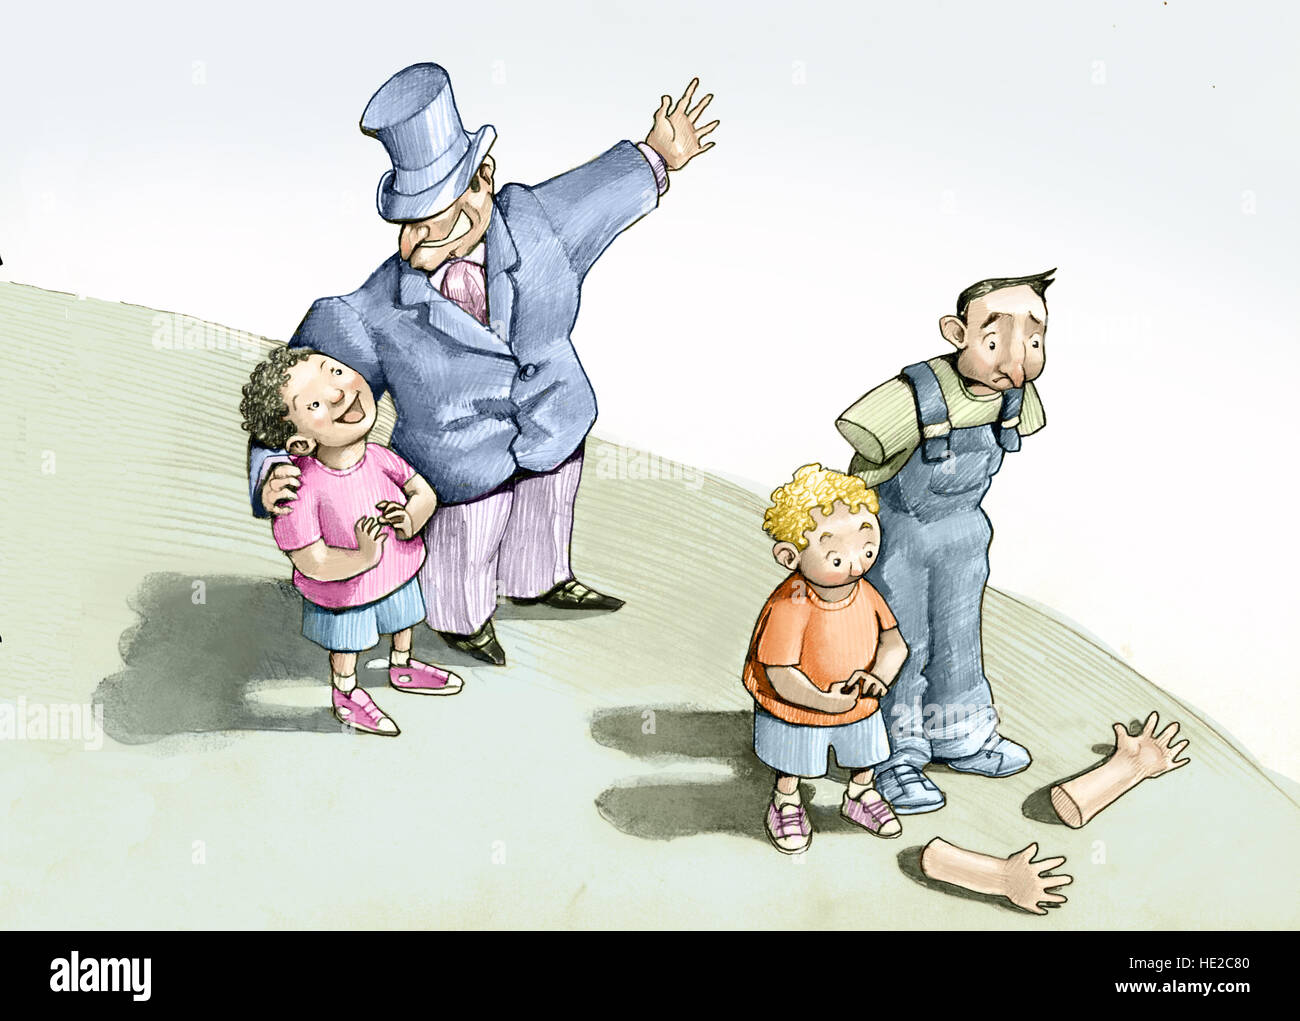 a rich parent offers a future to his son a poor parent loses his arms, can not give a future to his son - Stock Image